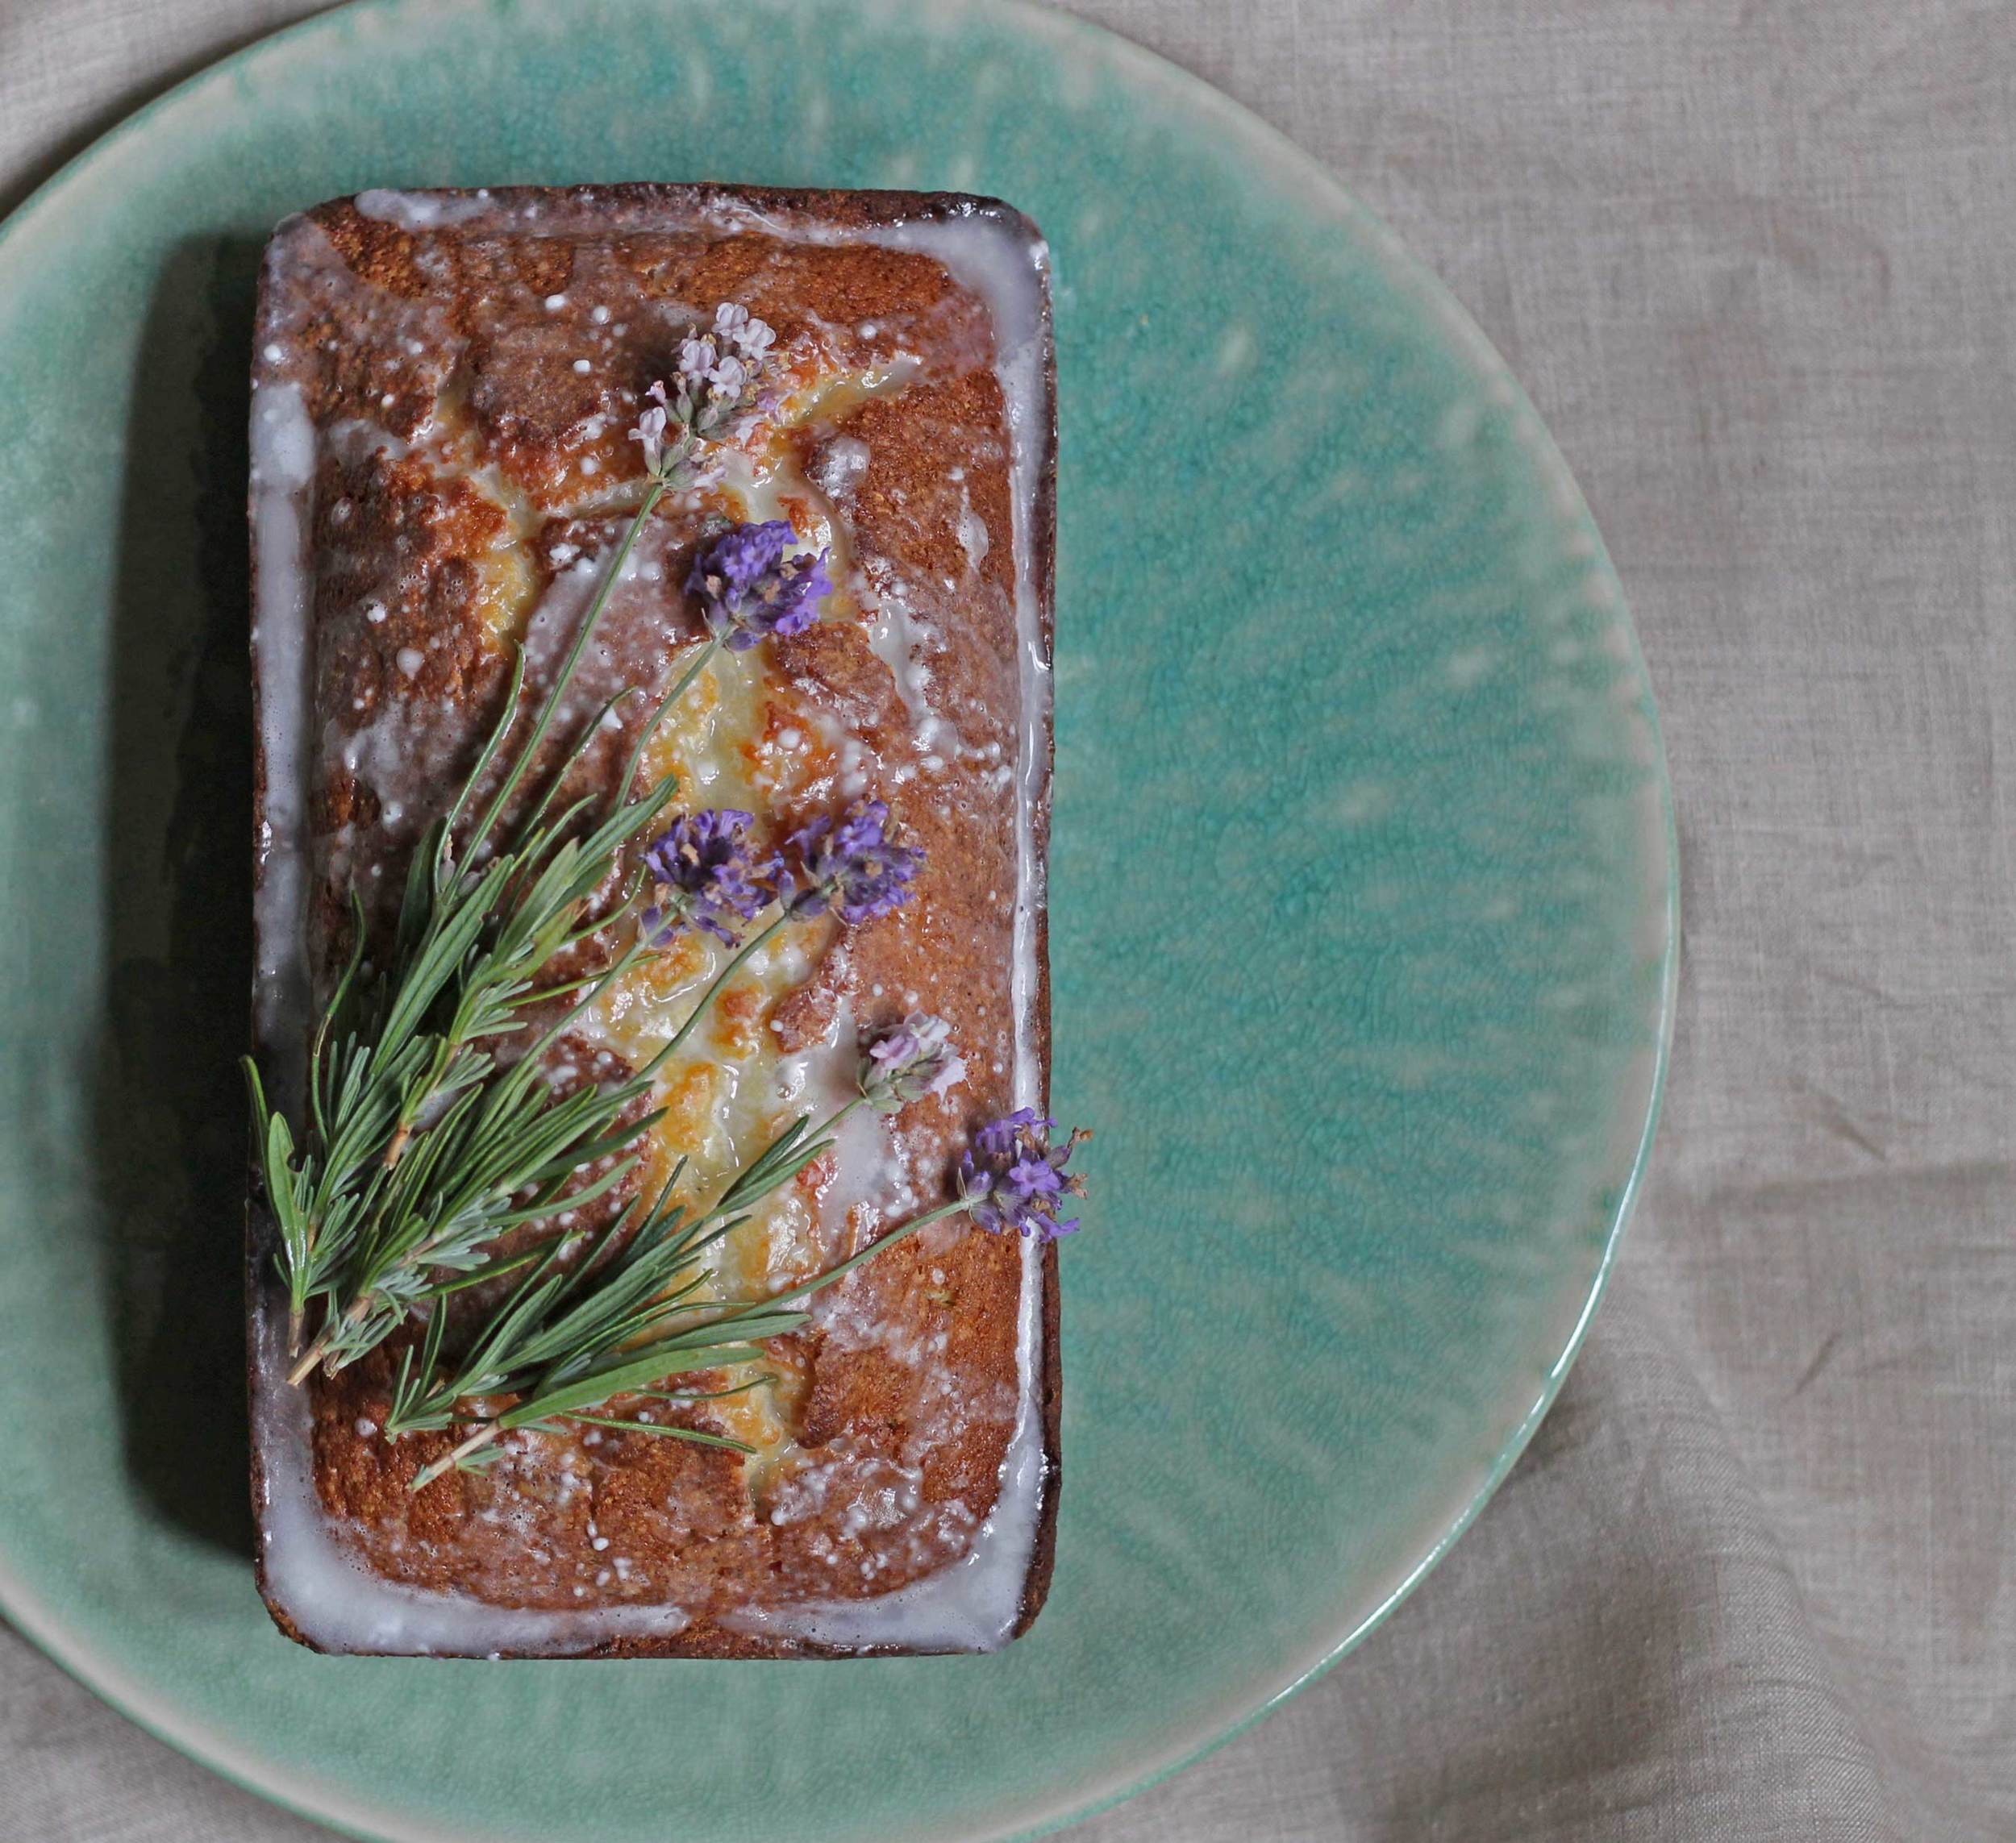 Lavender Pound Cake with a Glaze, perfect summer dessert, recipe by Thread & Whisk